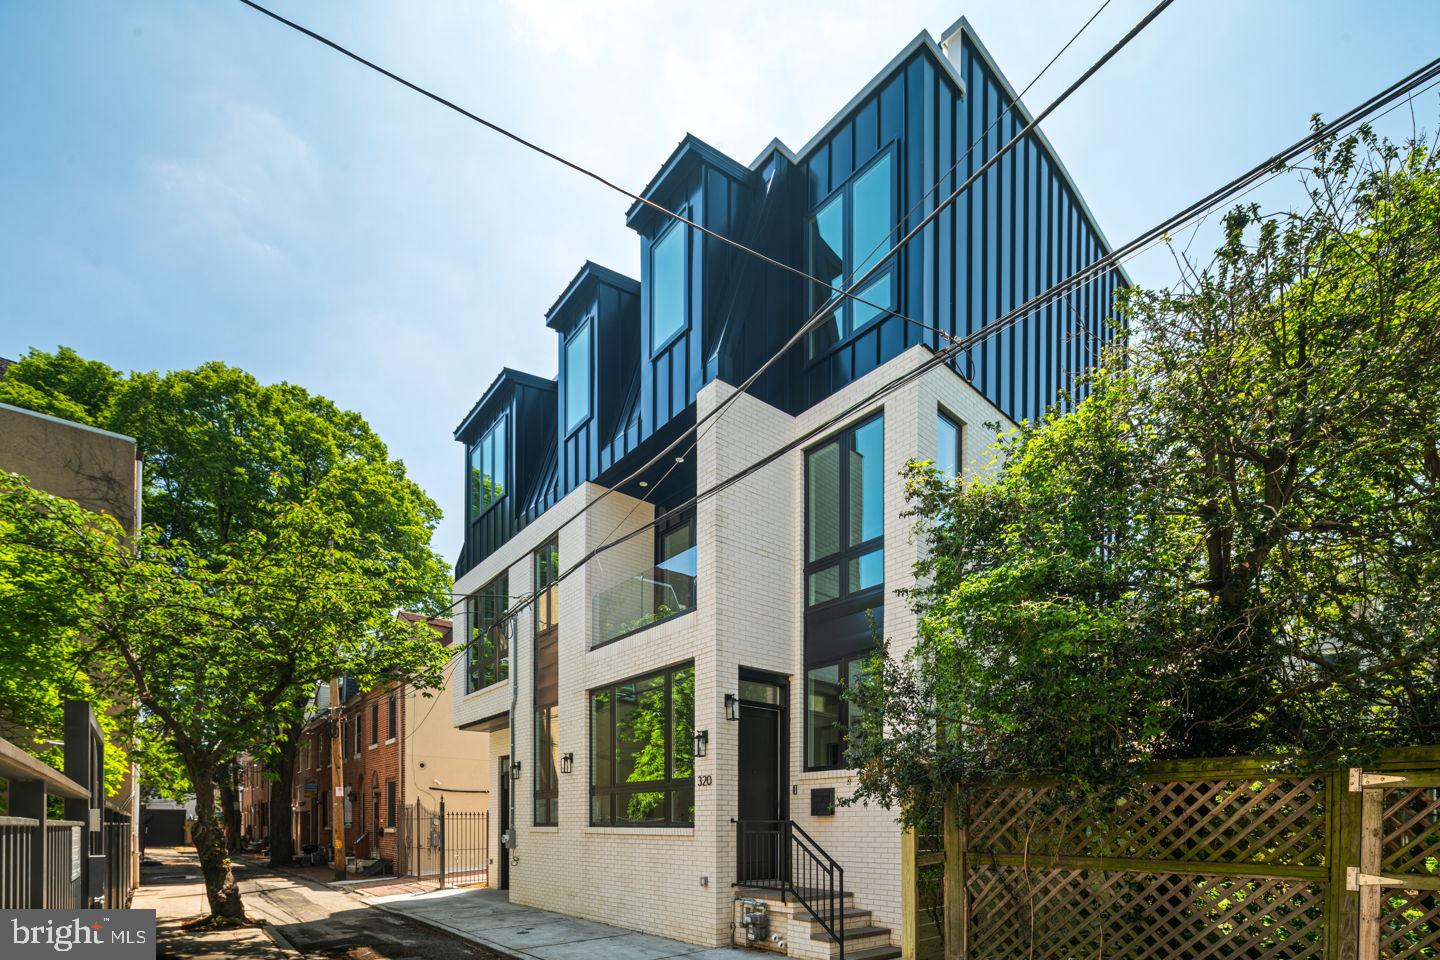 This unique, completely detached home, is unlike any you will find in the city.  Sitting on a 42 foot wide lot, this home is 39 feet wide.  Absolutely stunning from the inside out, located on a quiet, secluded street in the heart of Queen Village.  Almost 4,000 square feet of living space featuring a 2 car garage, 4 bedrooms, 4.5 bathrooms, Elevator, 3 outdoor spaces, Meredith Catchment, approved 10 year tax abatement, tons of closet space and much more. Upon entering you are welcomed by a large beautiful bright foyer, this first level also has the 2 car garage and large bedroom with full en-suite bath perfect for a guest room, office, workout space or den. Walk up to the sprawling, wide open main level with tall ceilings and flooded with natural light. This floor is complete with the timeless chef's kitchen featuring top of the line Miele and Sub-Zero appliances,  as well as high end  custom cabinetry and a stunning marble and mother of pearl backsplash.  The large dining room leads out to a balcony overlooking the quiet tree lined street. The living room is centered around a beautiful fireplace. This level also has a convenient powder room, huge walk-in pantry adjacent to the kitchen as well as an extremely convenient large laundry room. Up one more level to three bedrooms conveniently all on one floor.  Primary bedroom has a walk-in closet and jaw dropping en-bathroom, complete with soaking tub, 2 separate vanities and luxurious glass enclosed shower.   Up one more level is a large and very private roof deck with sprawling City views including the Center City Skyline and both Ben Franklin and Walt Whitman Bridges. The elevator is accessible on every level from the finished basement to the roof deck. The finished basement if very large with high ceilings, fantastic natural light and another full bathroom ideal for an extra hangout space, home gym or both. This luxurious home checks all the boxes and is ready for you to move in!  Move right in to this 100% complete